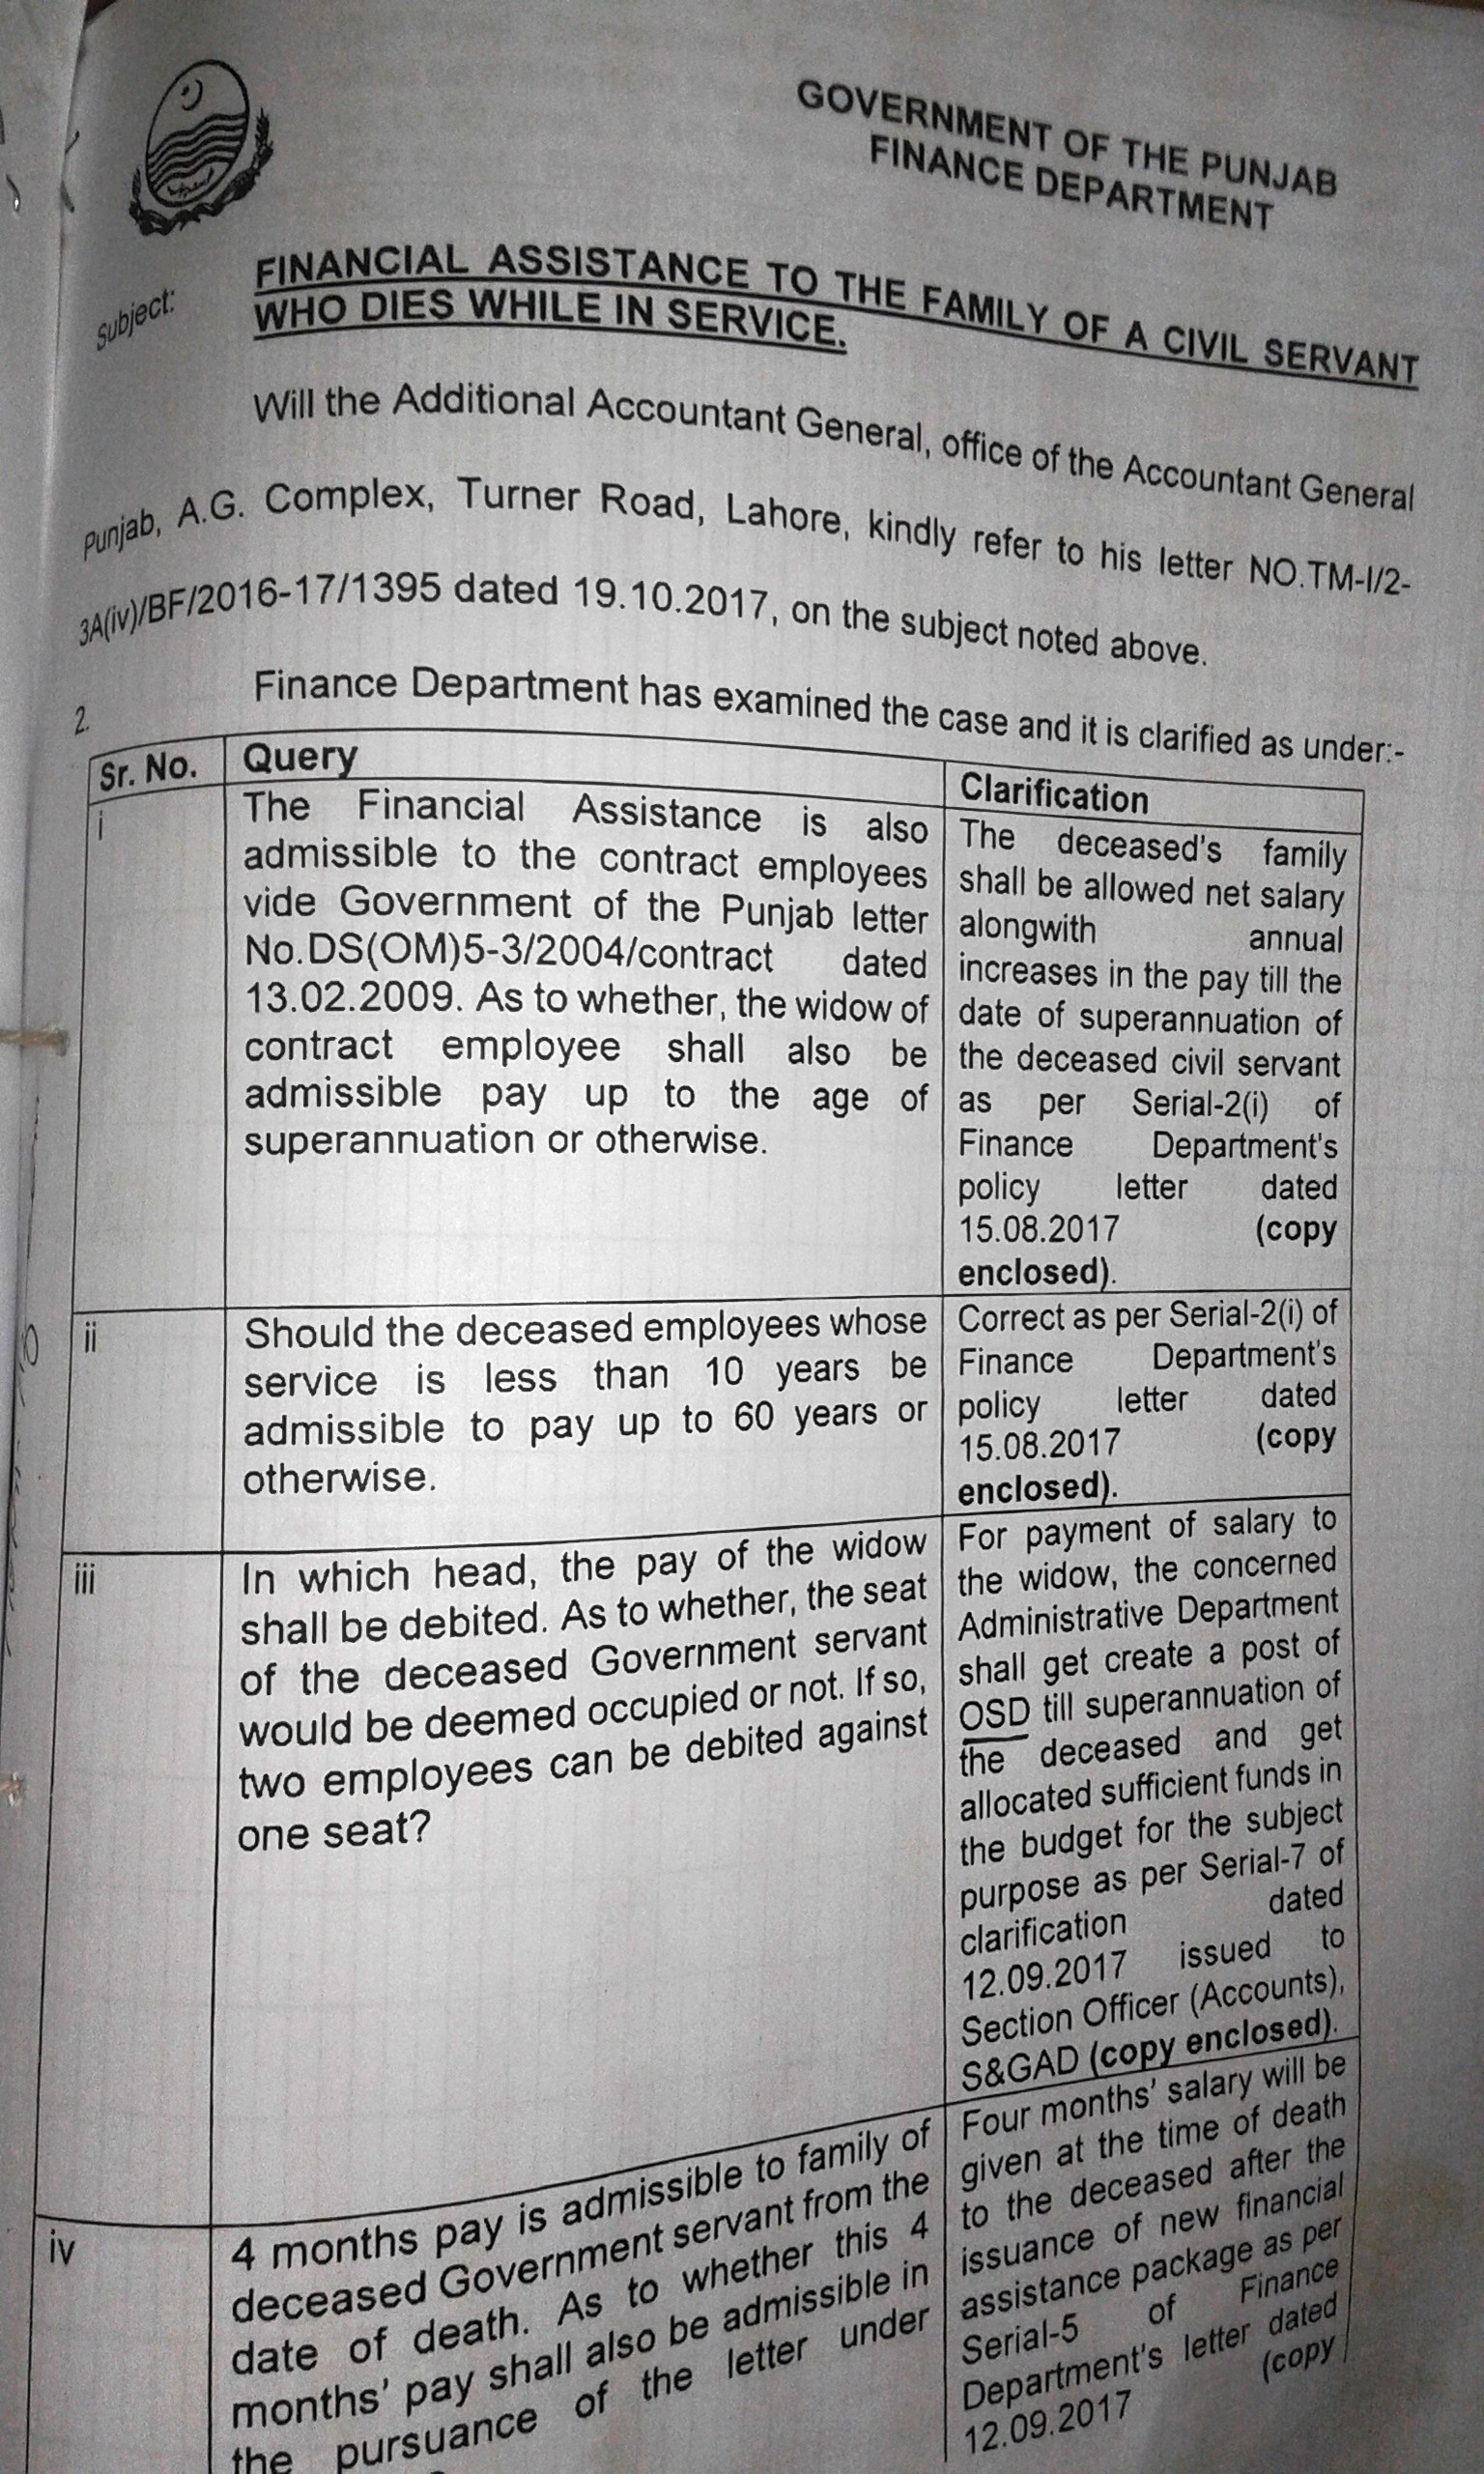 Notification of Financial Assistance Less Than 10 Years Service, Contract Employees, 4 Months Salary-Punjab Govt Clarification